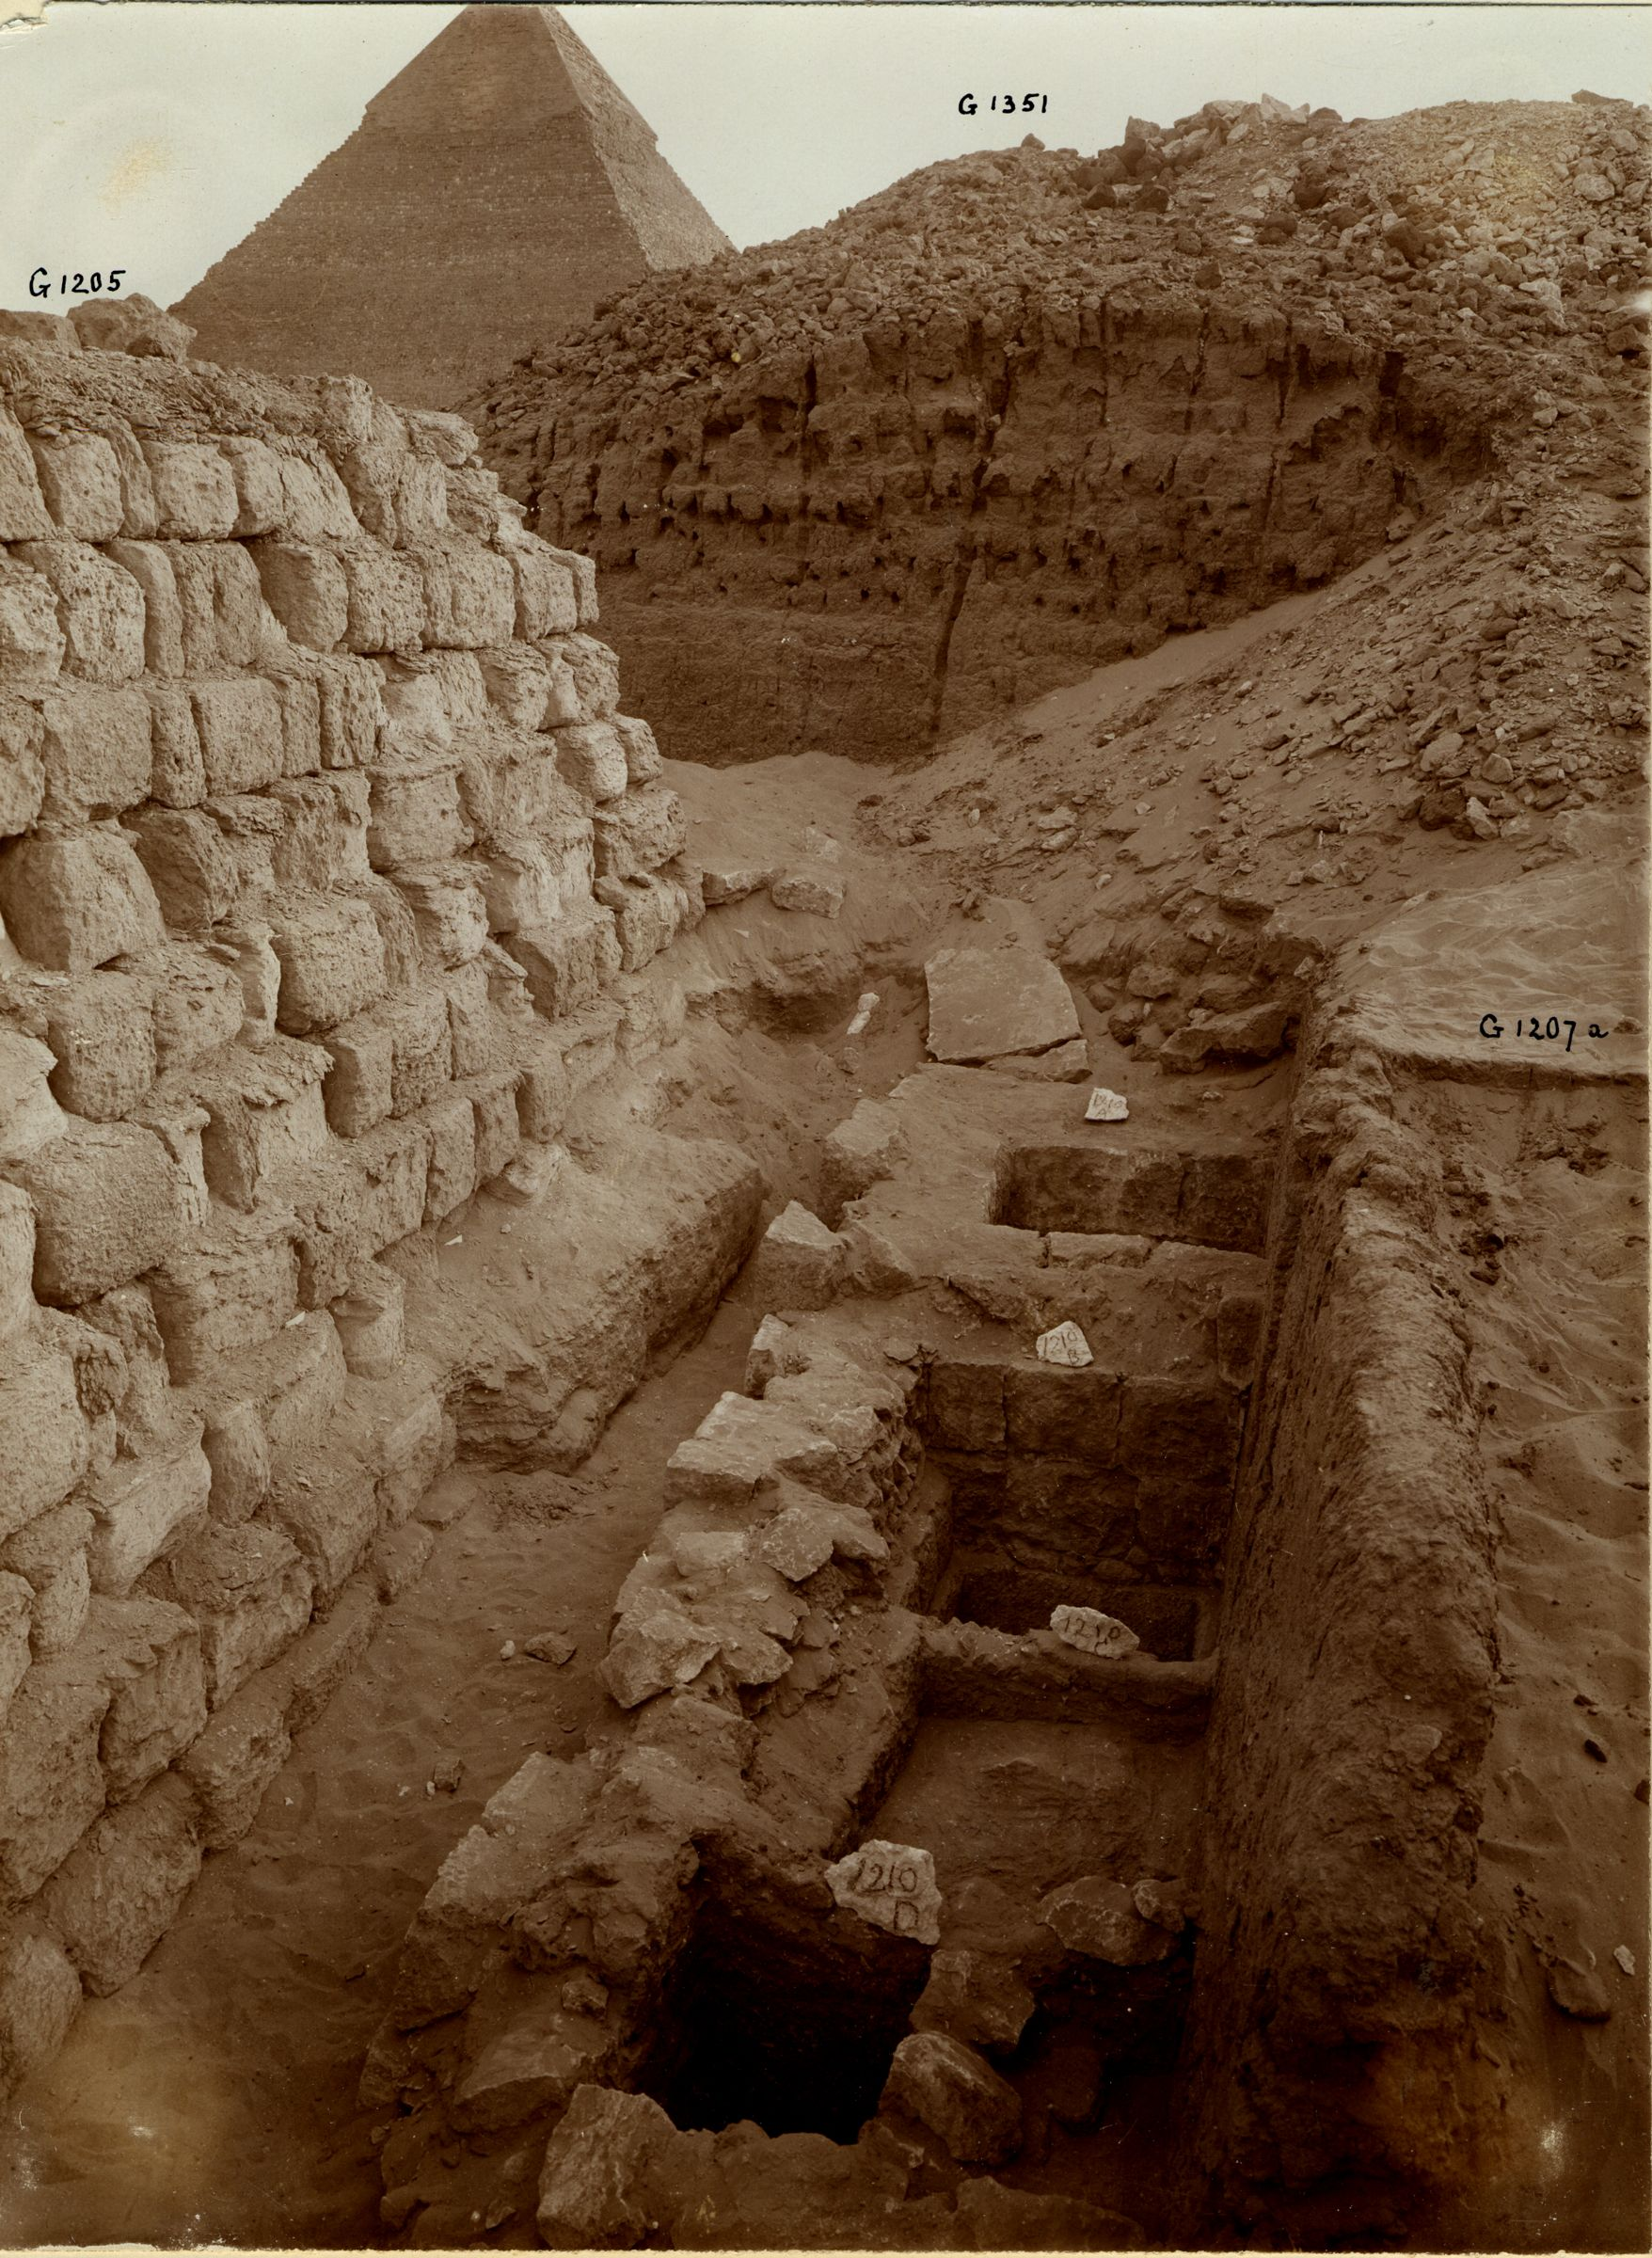 Western Cemetery: Site: Giza; View: G 1210, G 1207, G 1205, G 1351